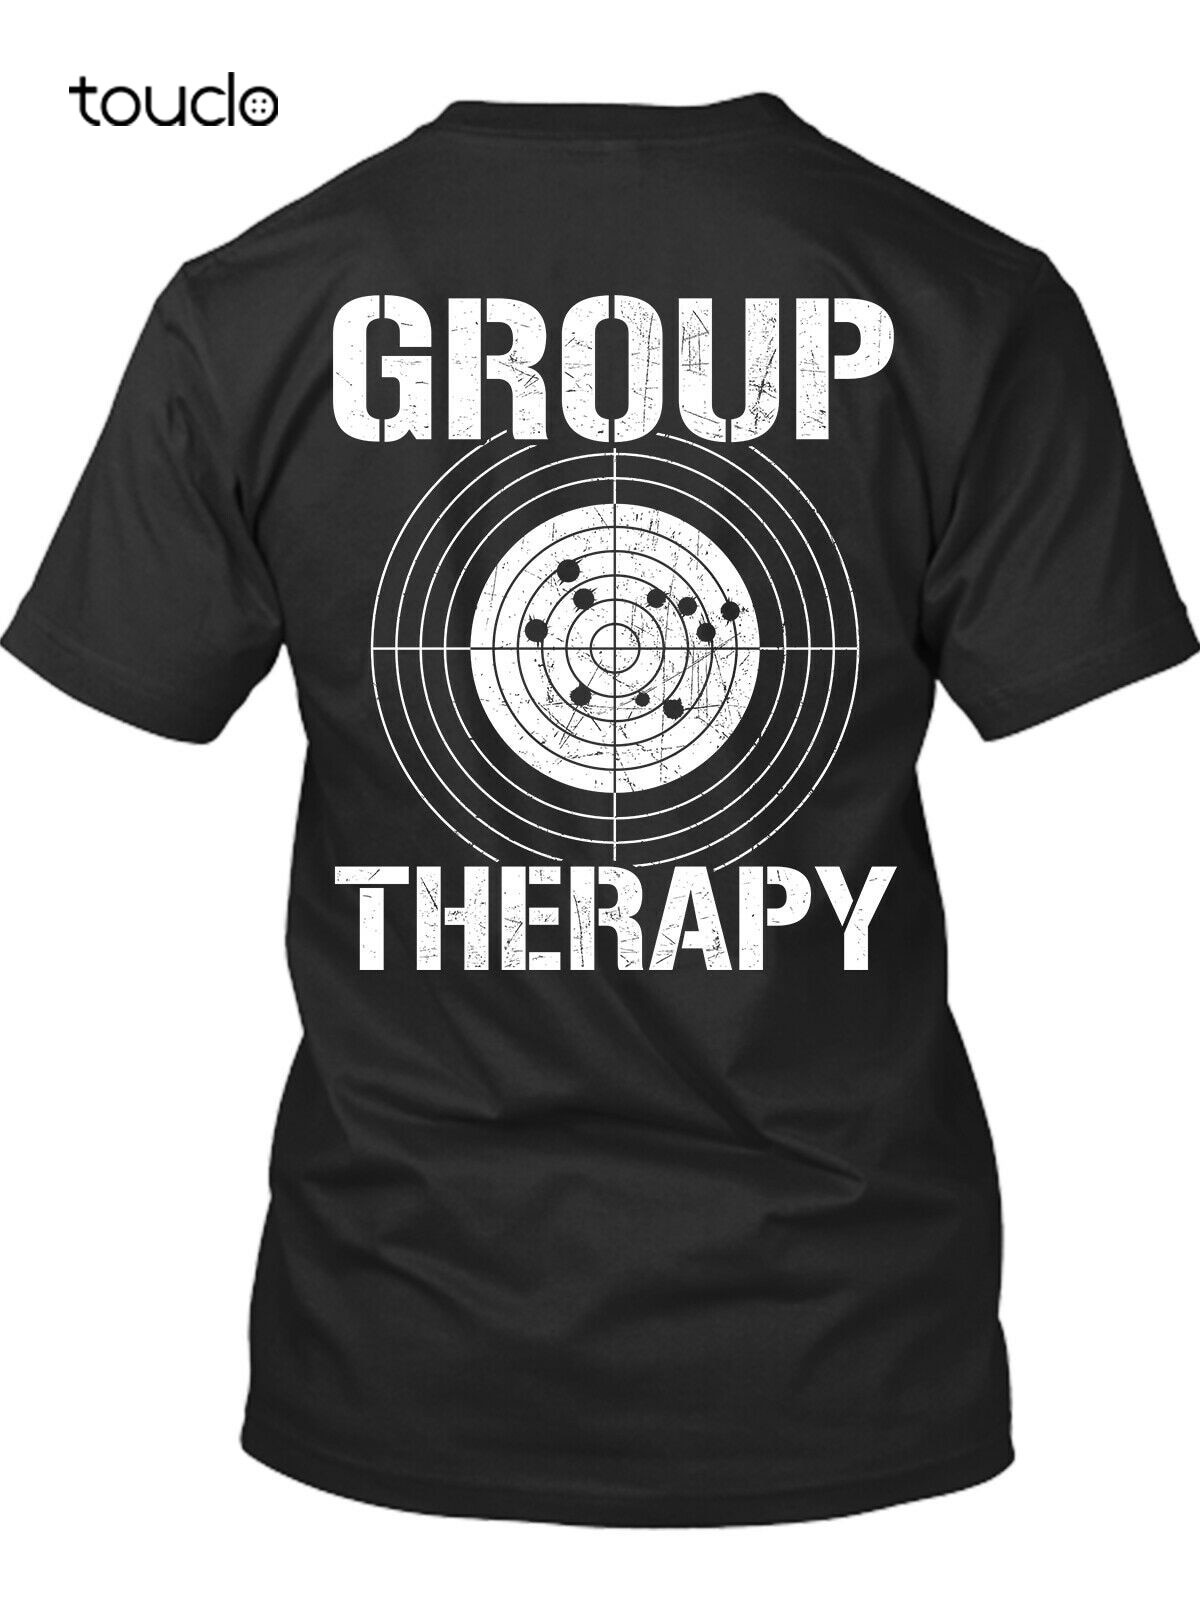 Group Therapy Shooting Funny Gun New Men's Shirt Unisex American Rights Laws Tee